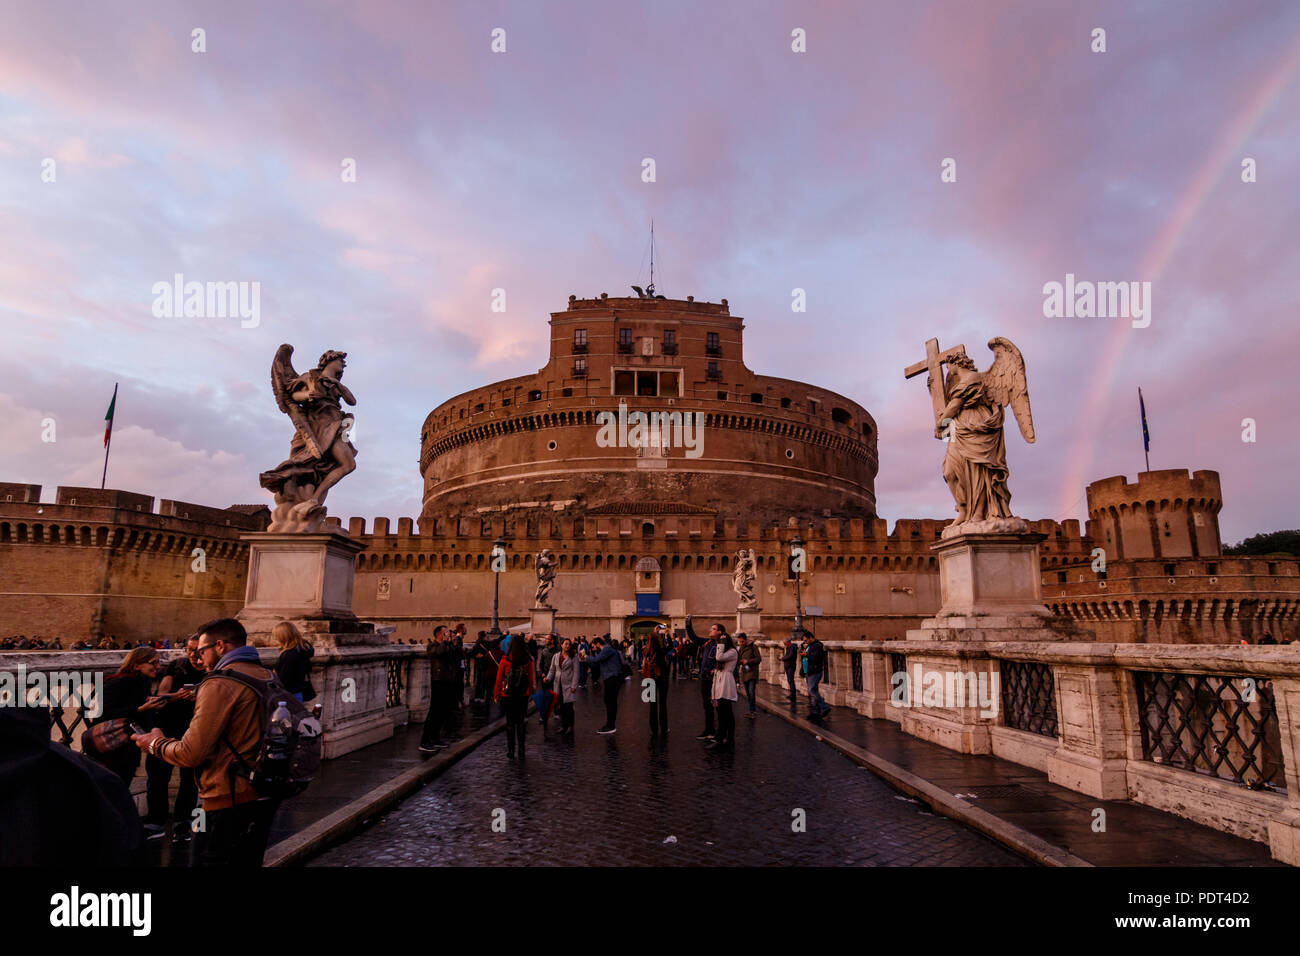 A St Angelo's Castle view in golden hour with a rainbow. Rome, Italy. - Stock Image